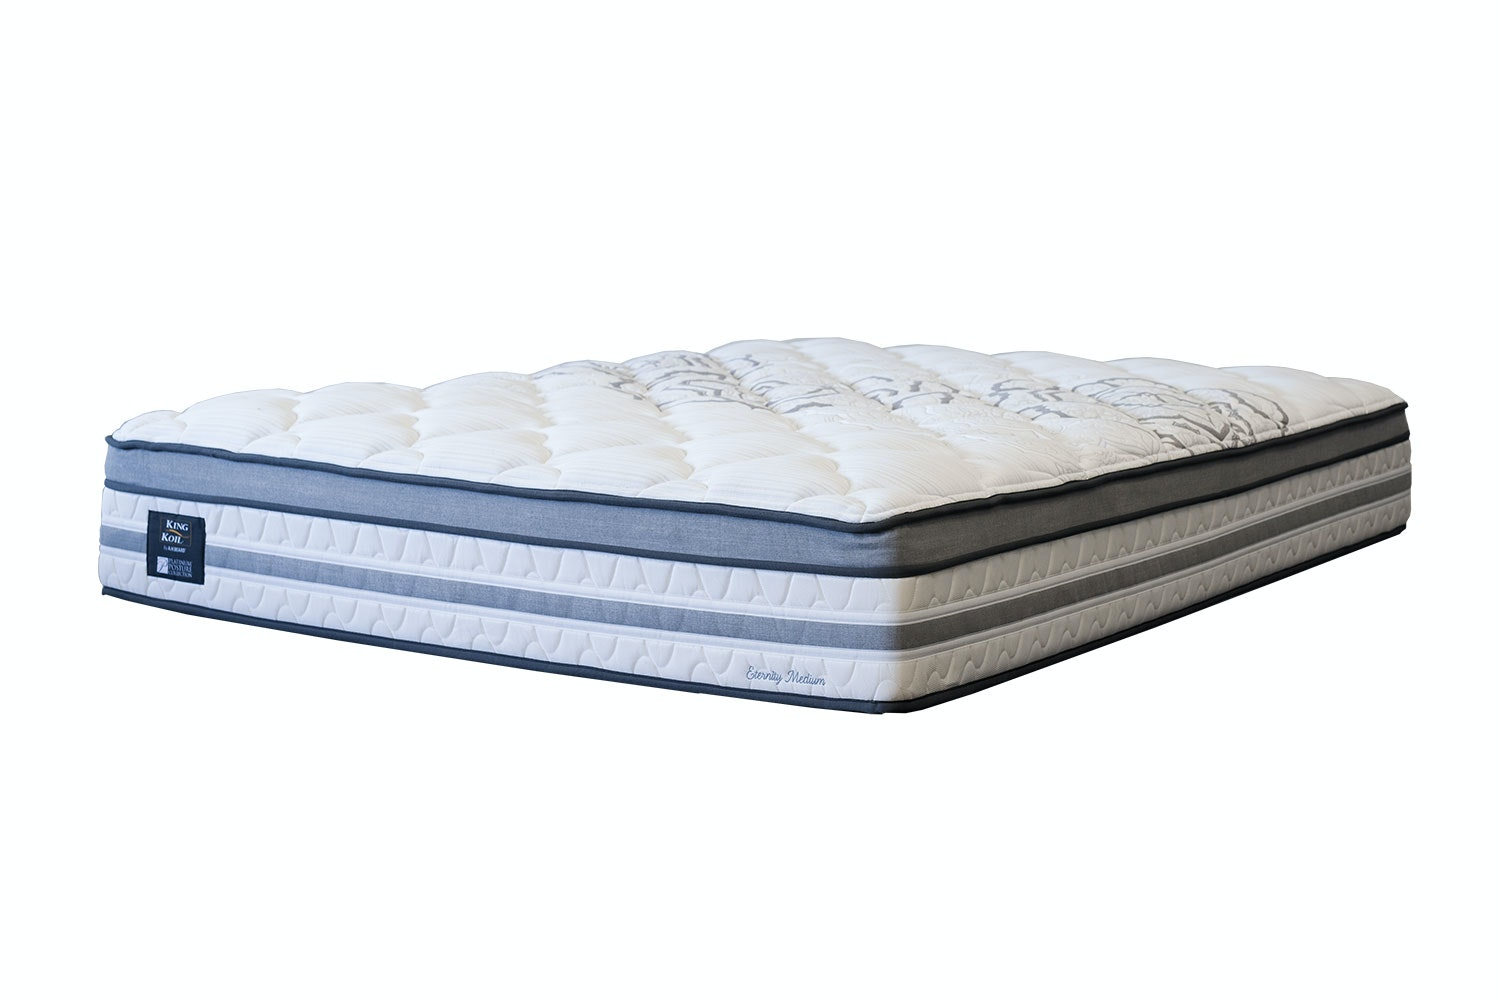 Eternity Medium Super King Mattress by King Koil